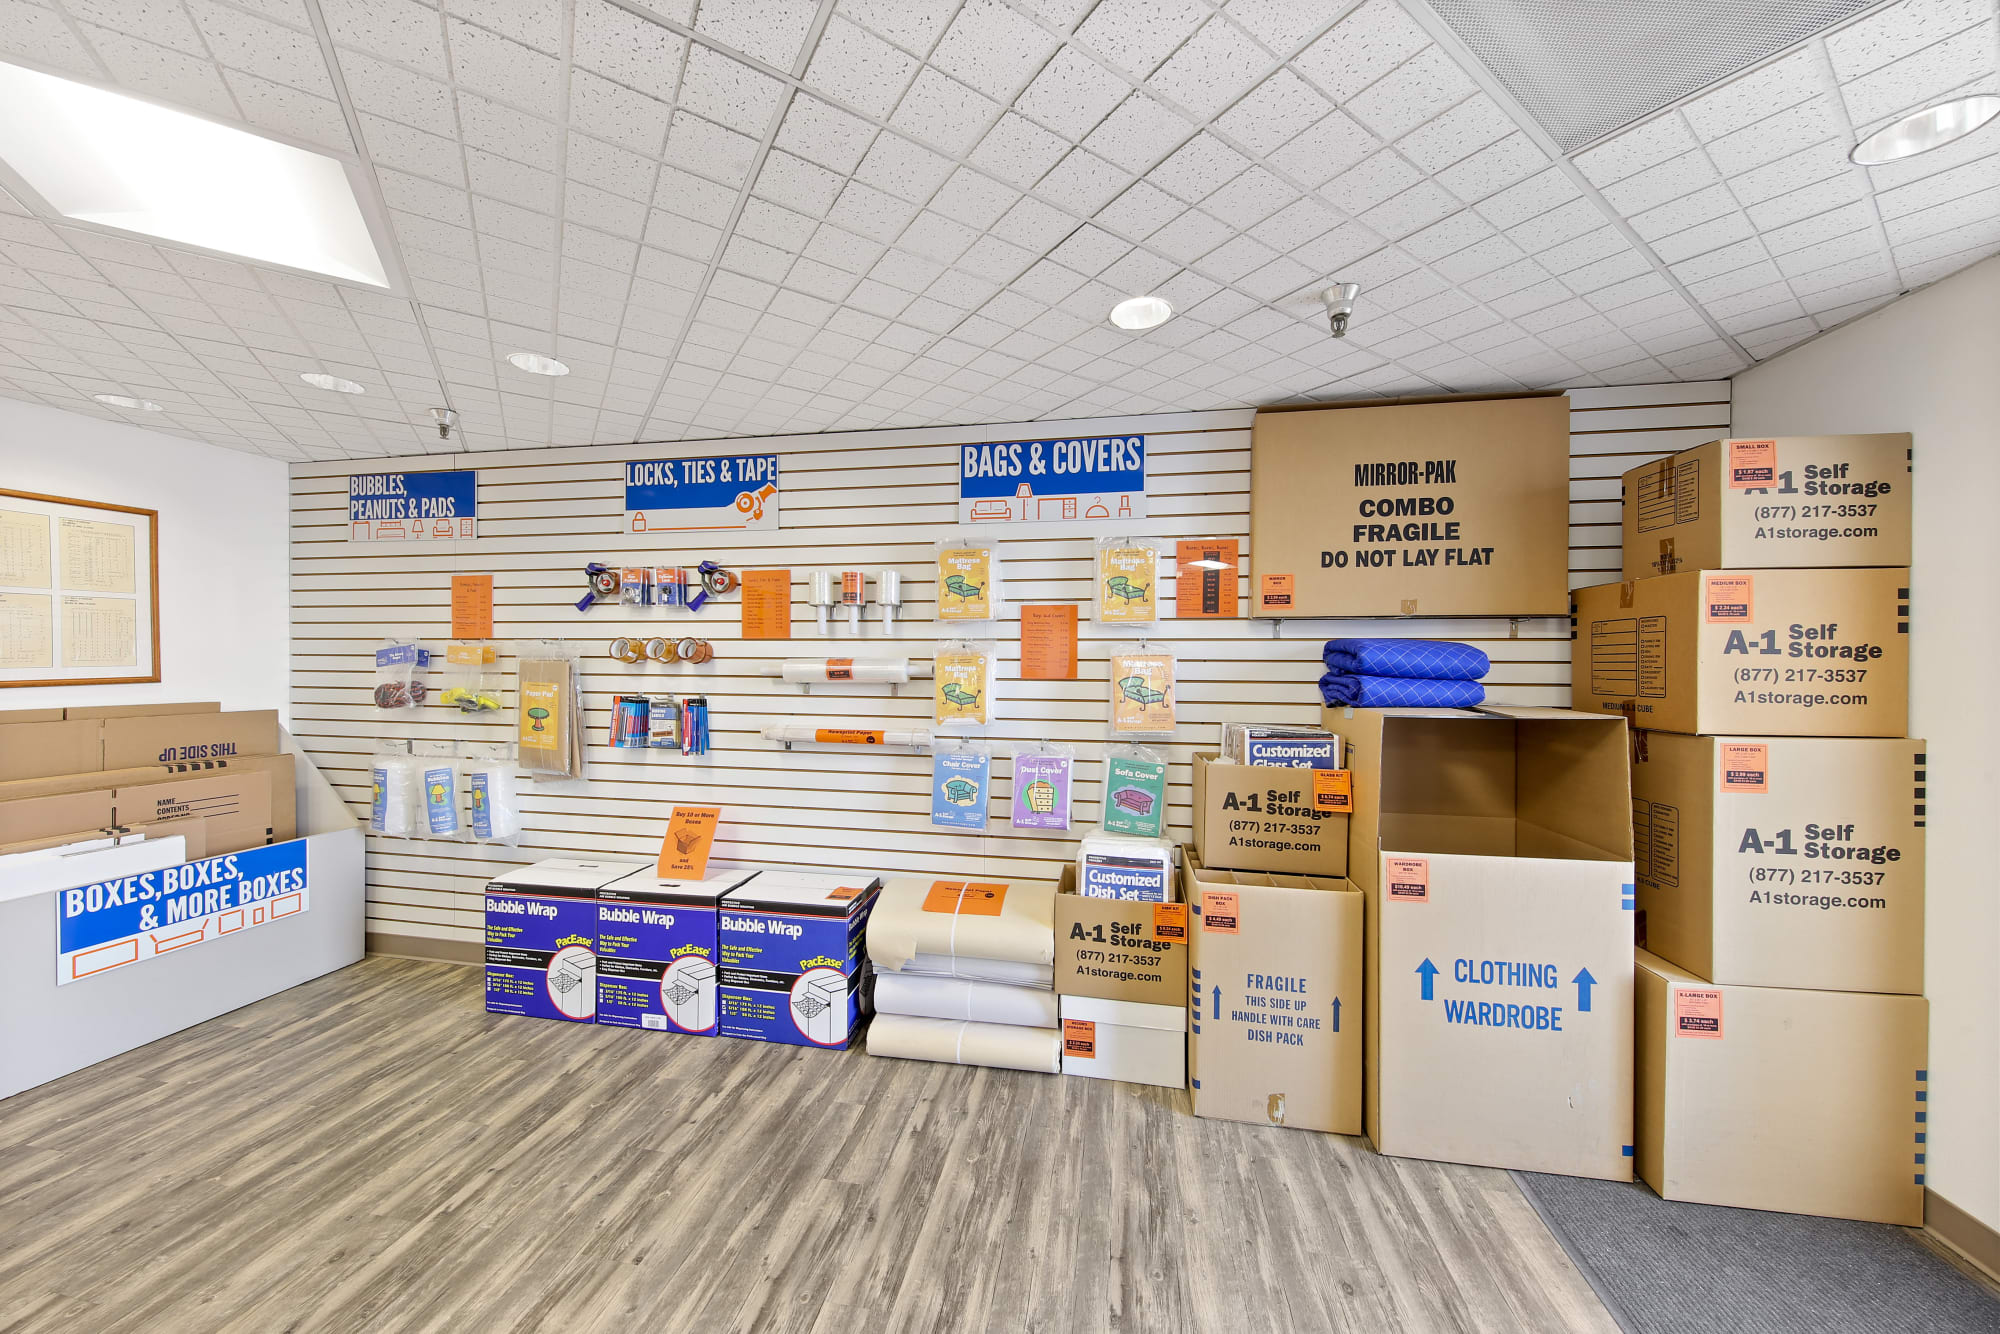 Packing and moving supplies available from A-1 Self Storage in La Mesa, California